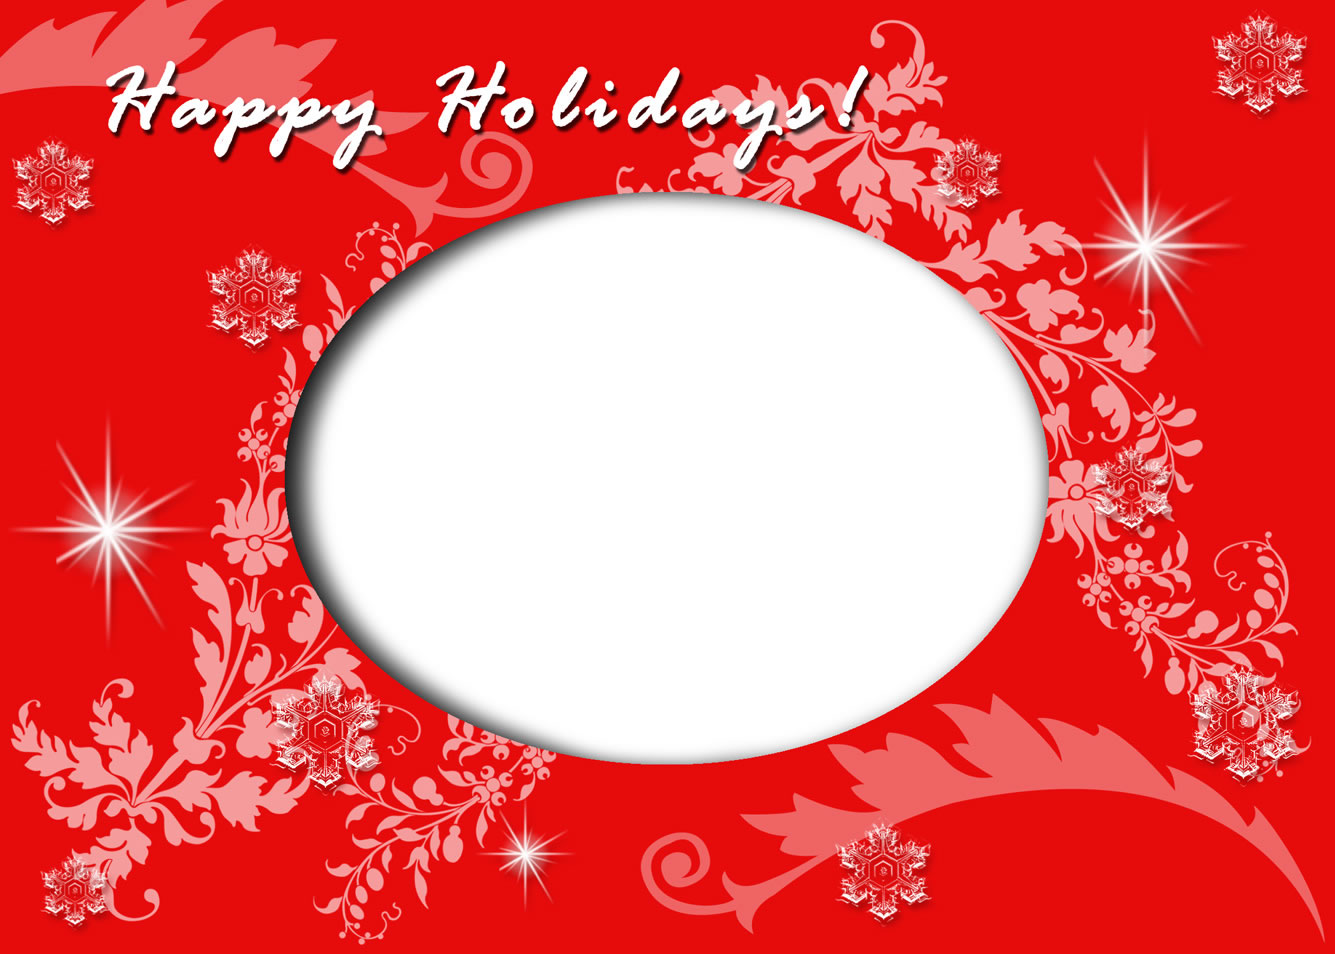 Christmas card templates | rtcrita's blog